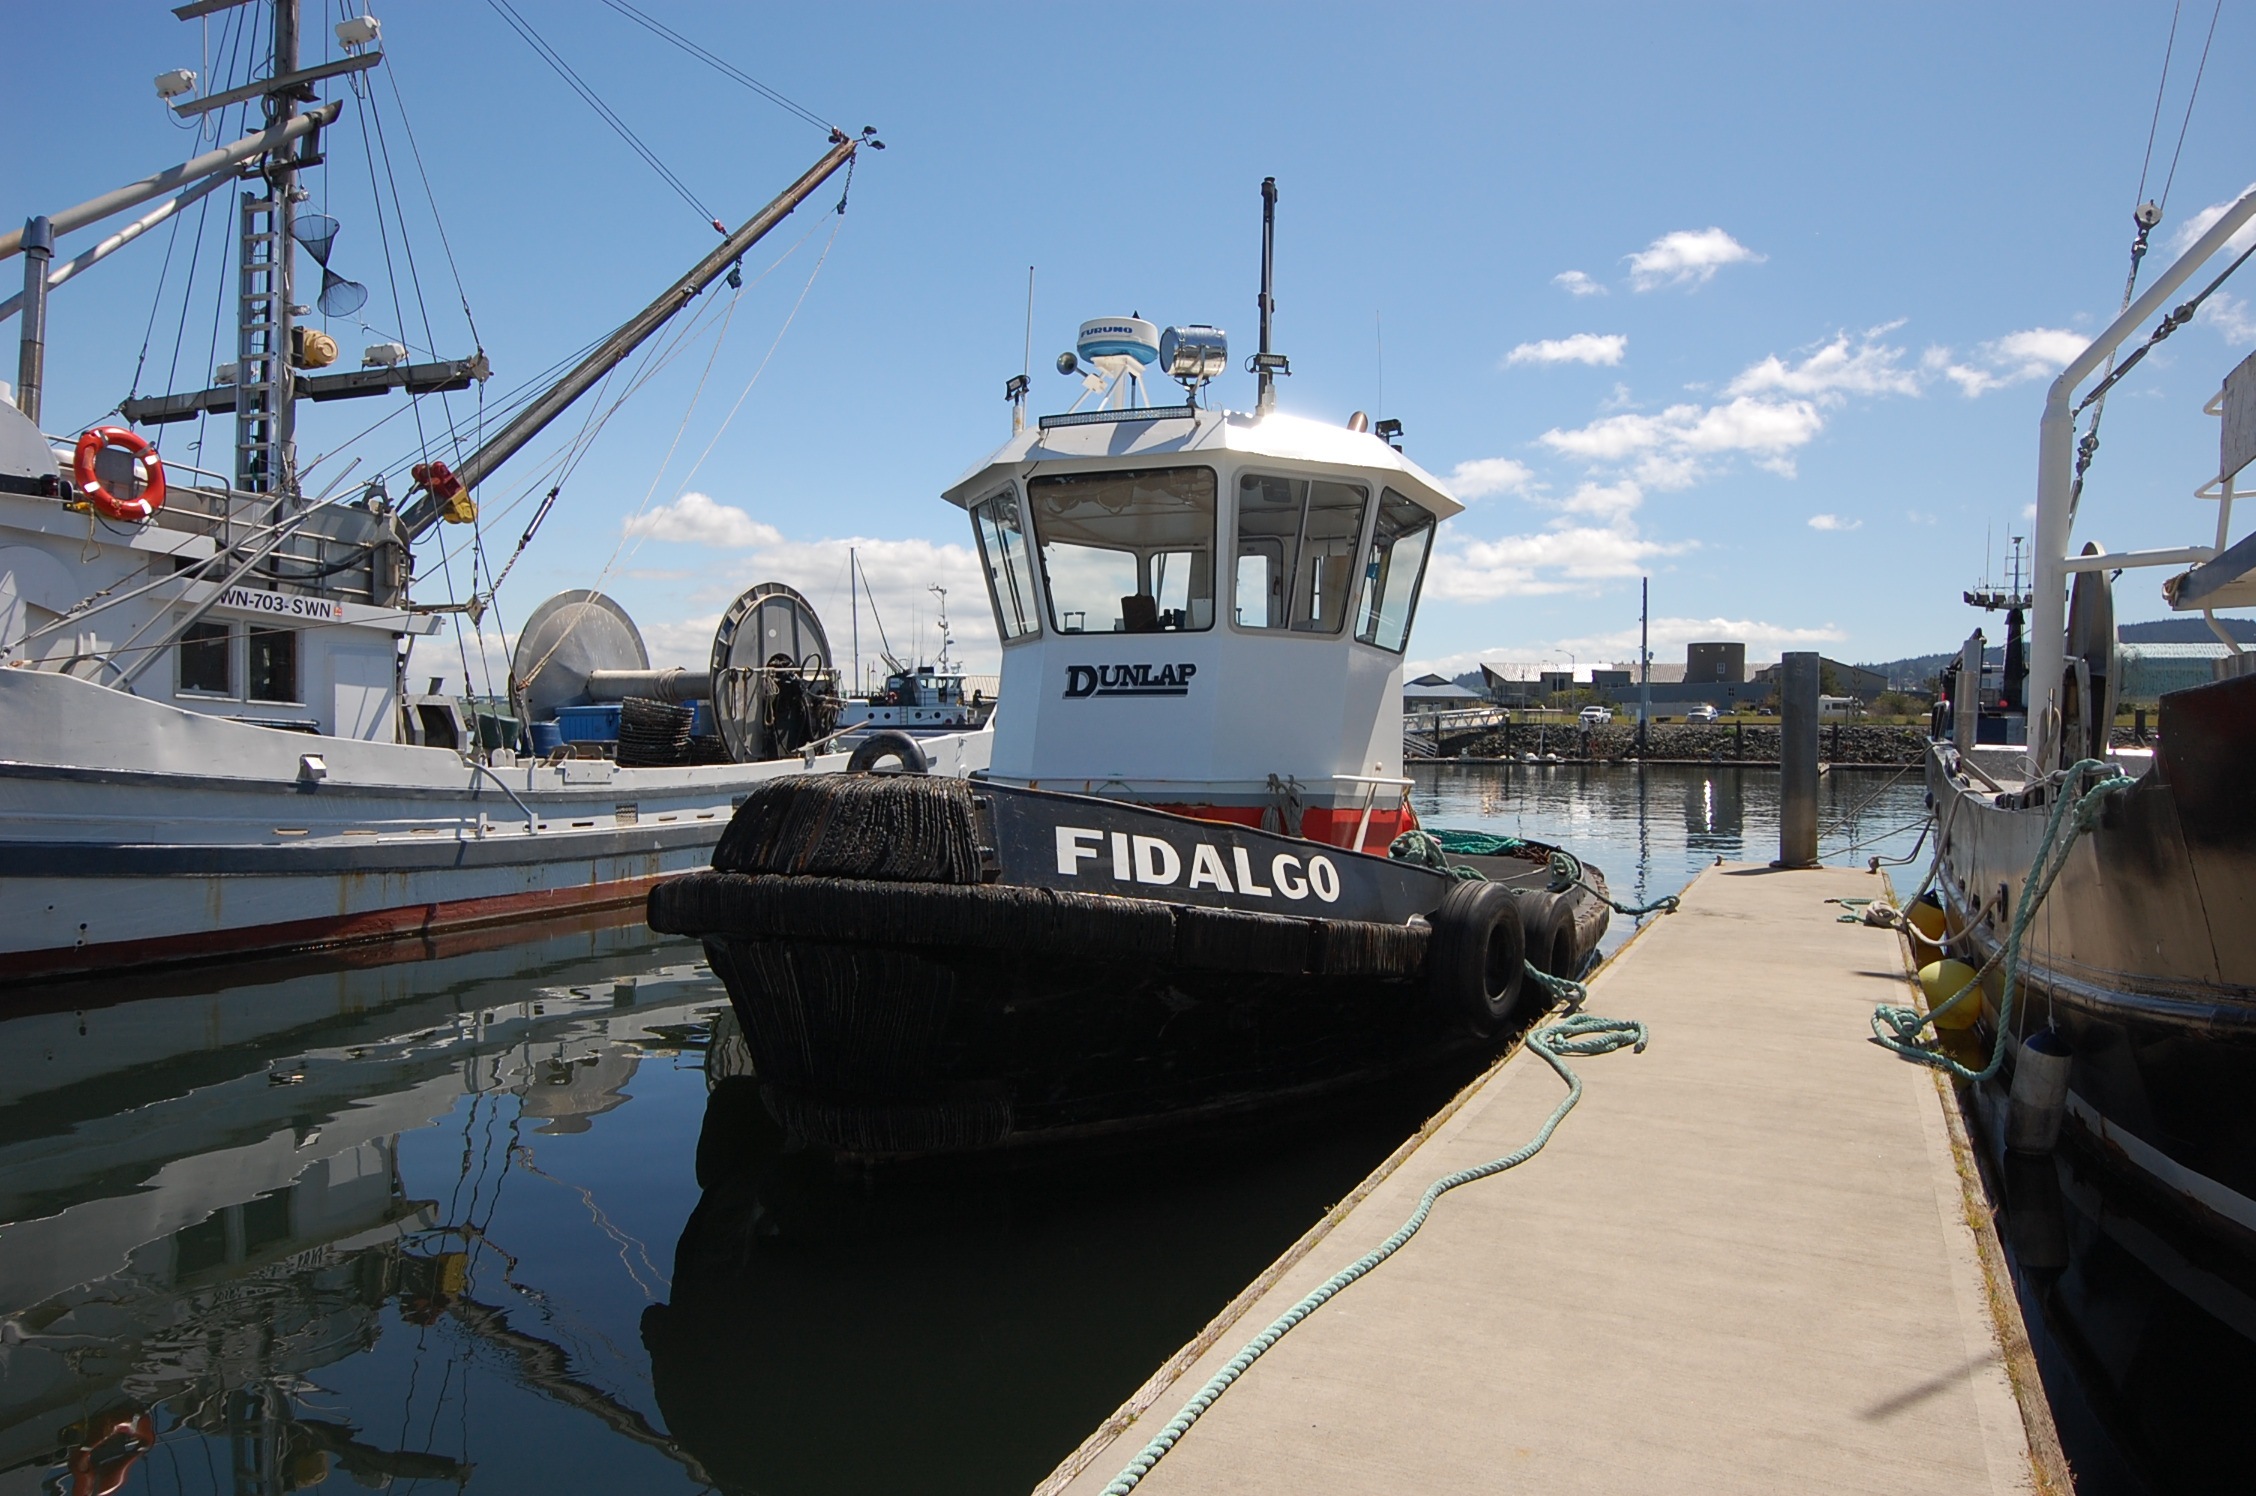 Boat at a dock with the word Fidalgo written on the side